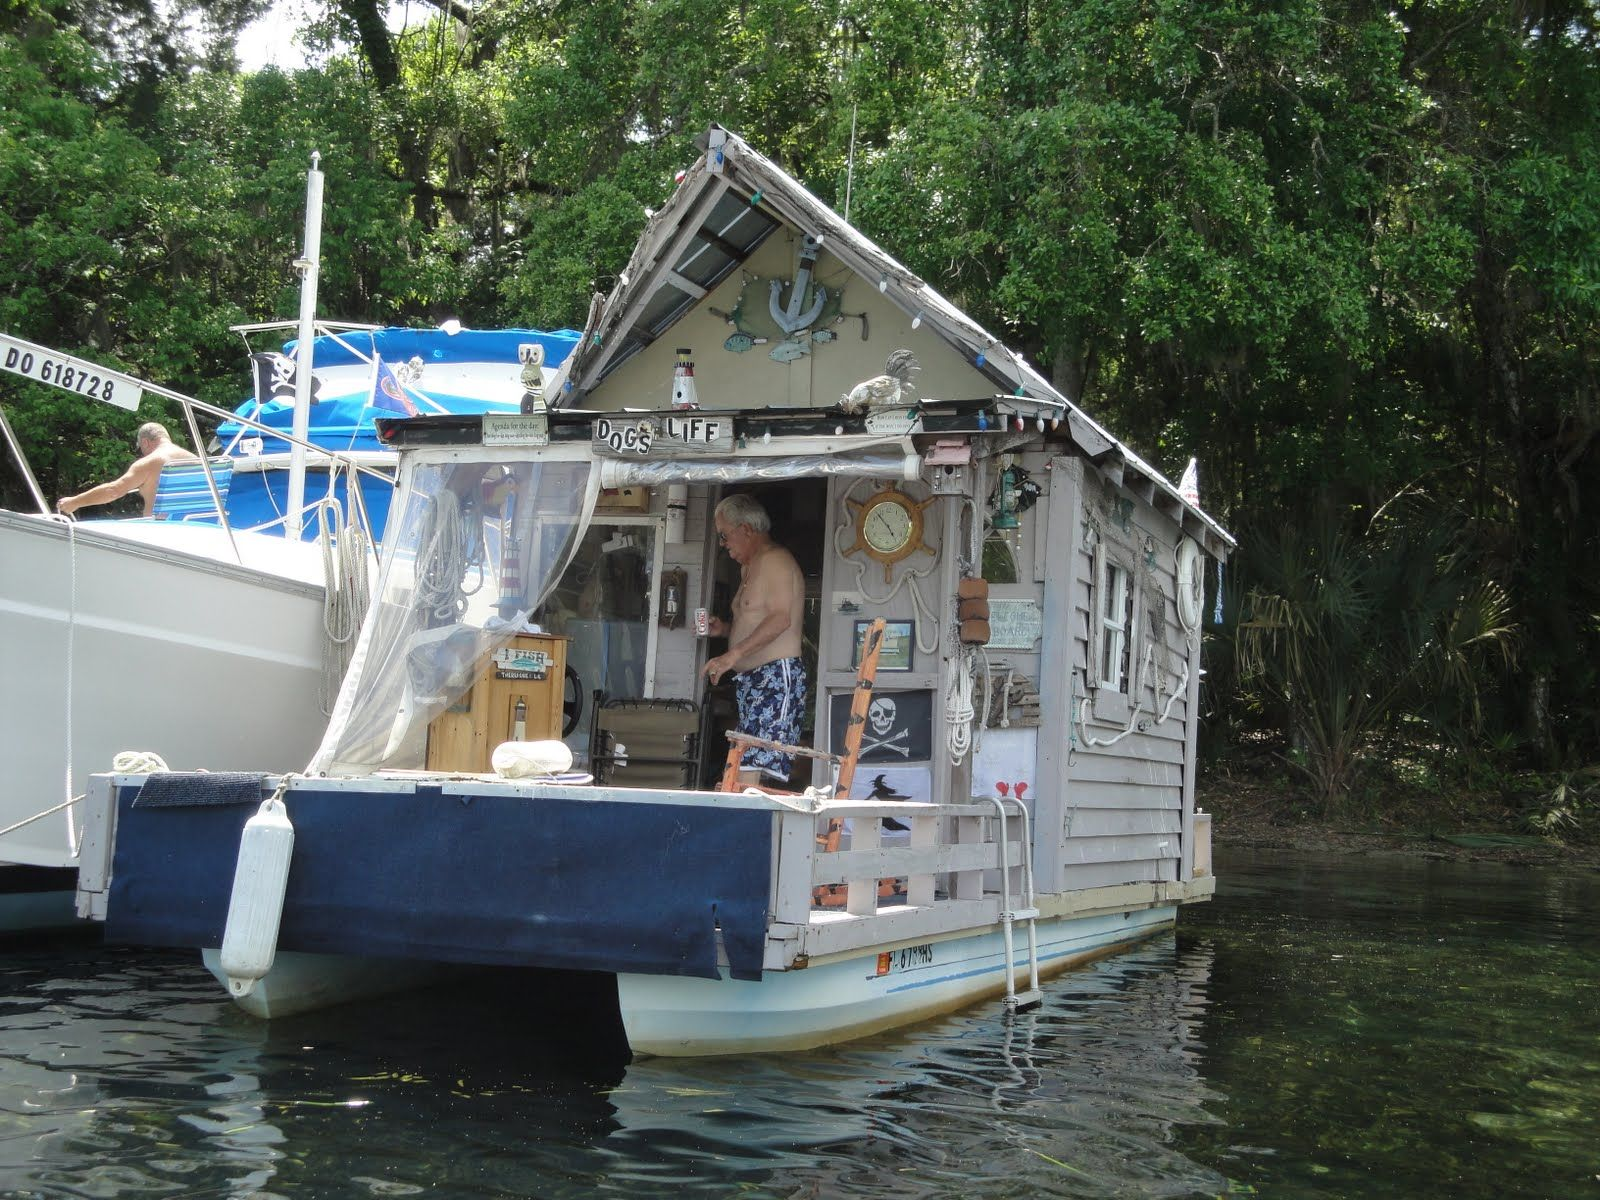 houseboat images ten super cool tiny houses shelters treehouses and houseboats - Small Houseboat